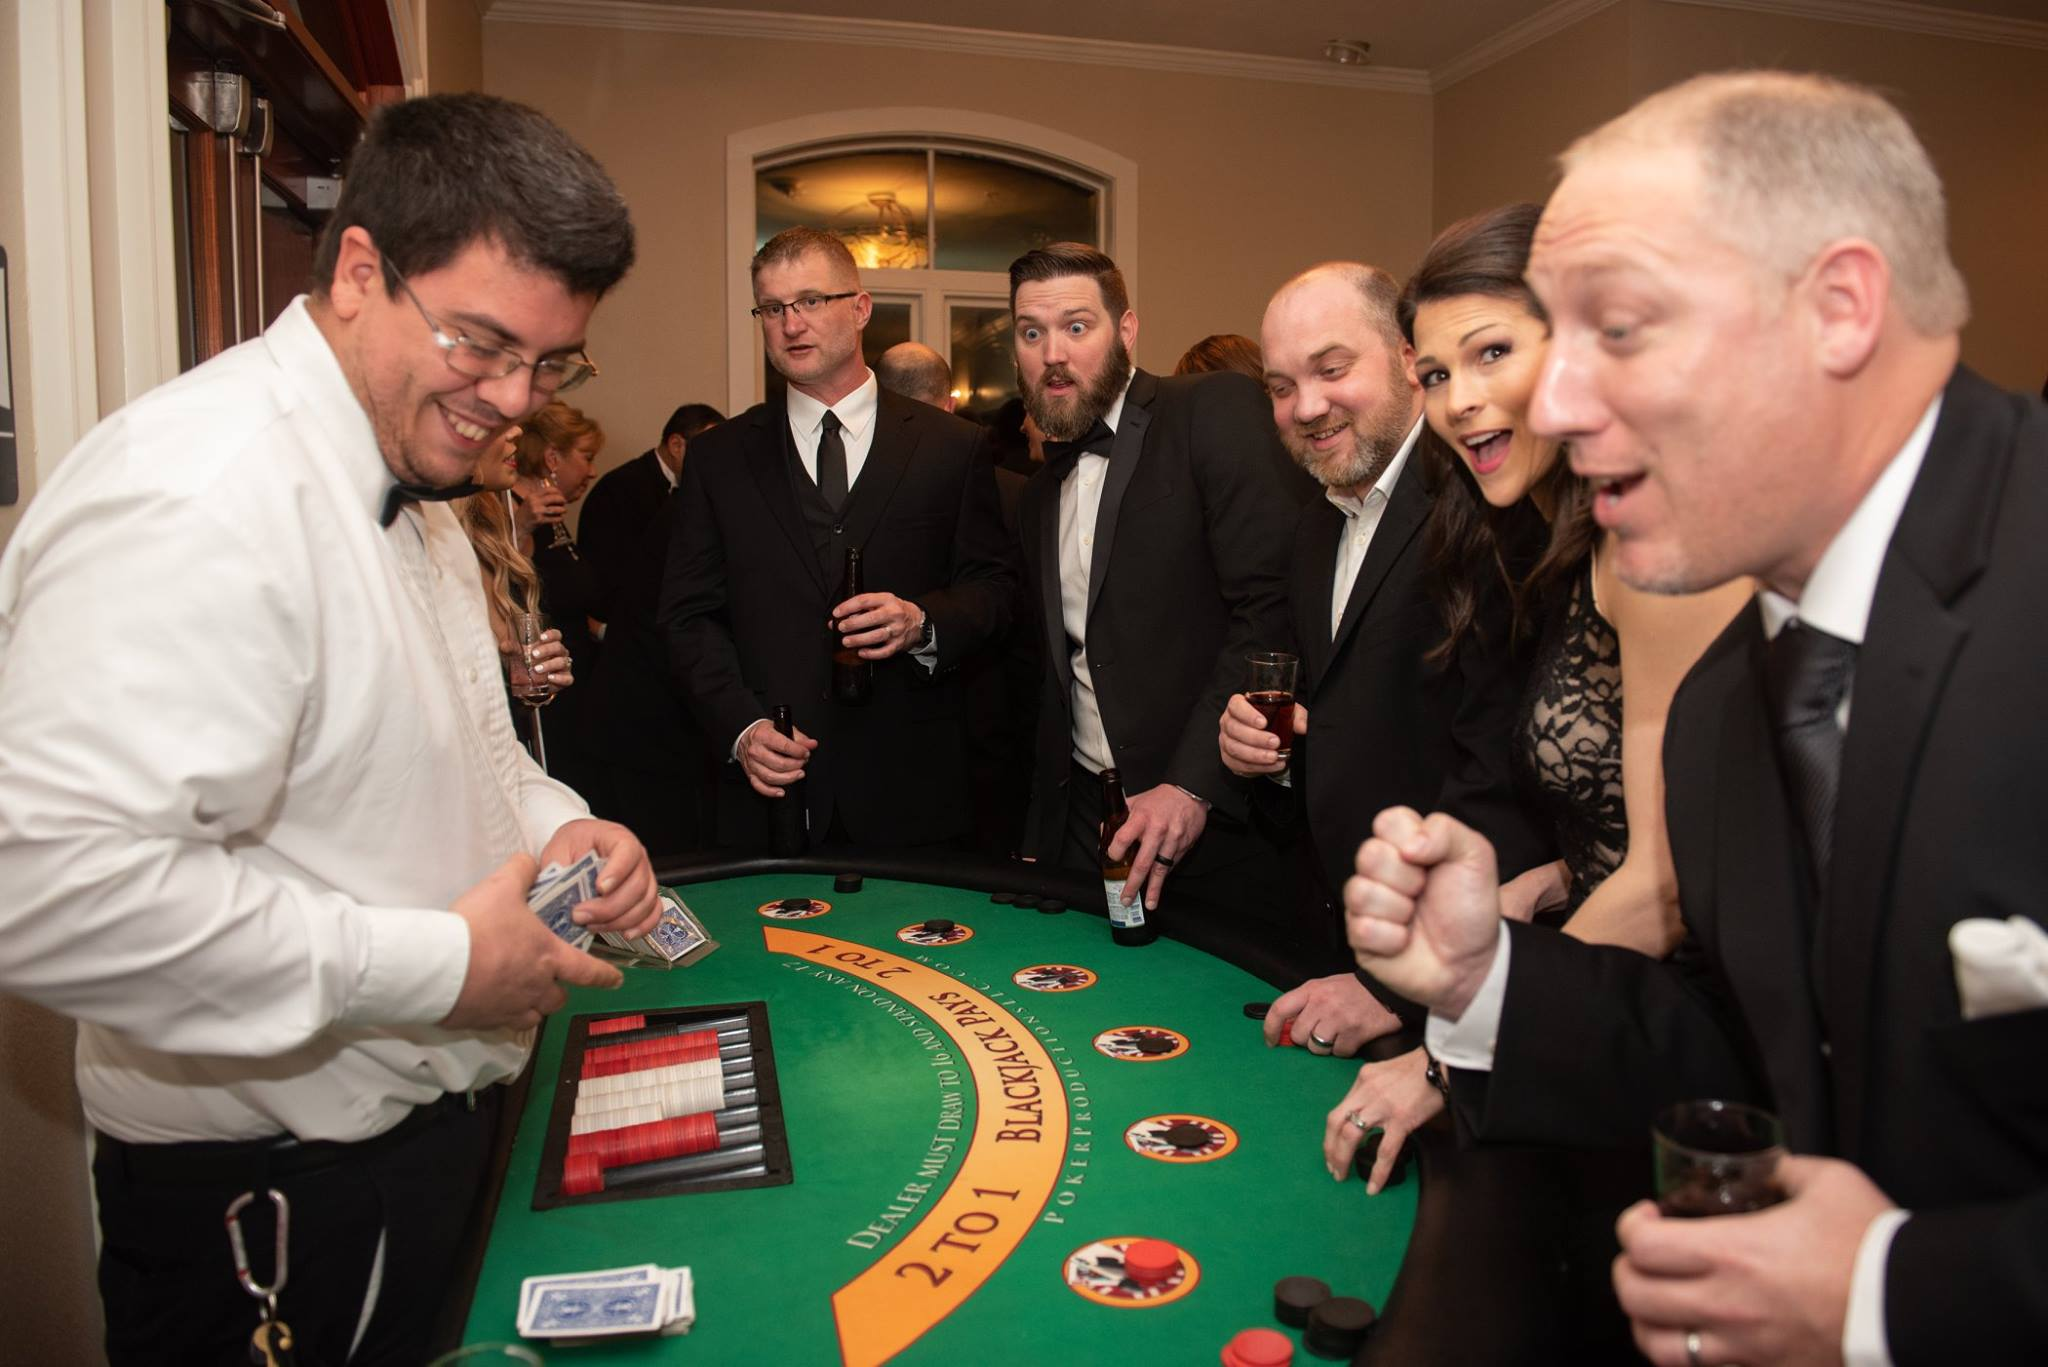 Players at the black jack table